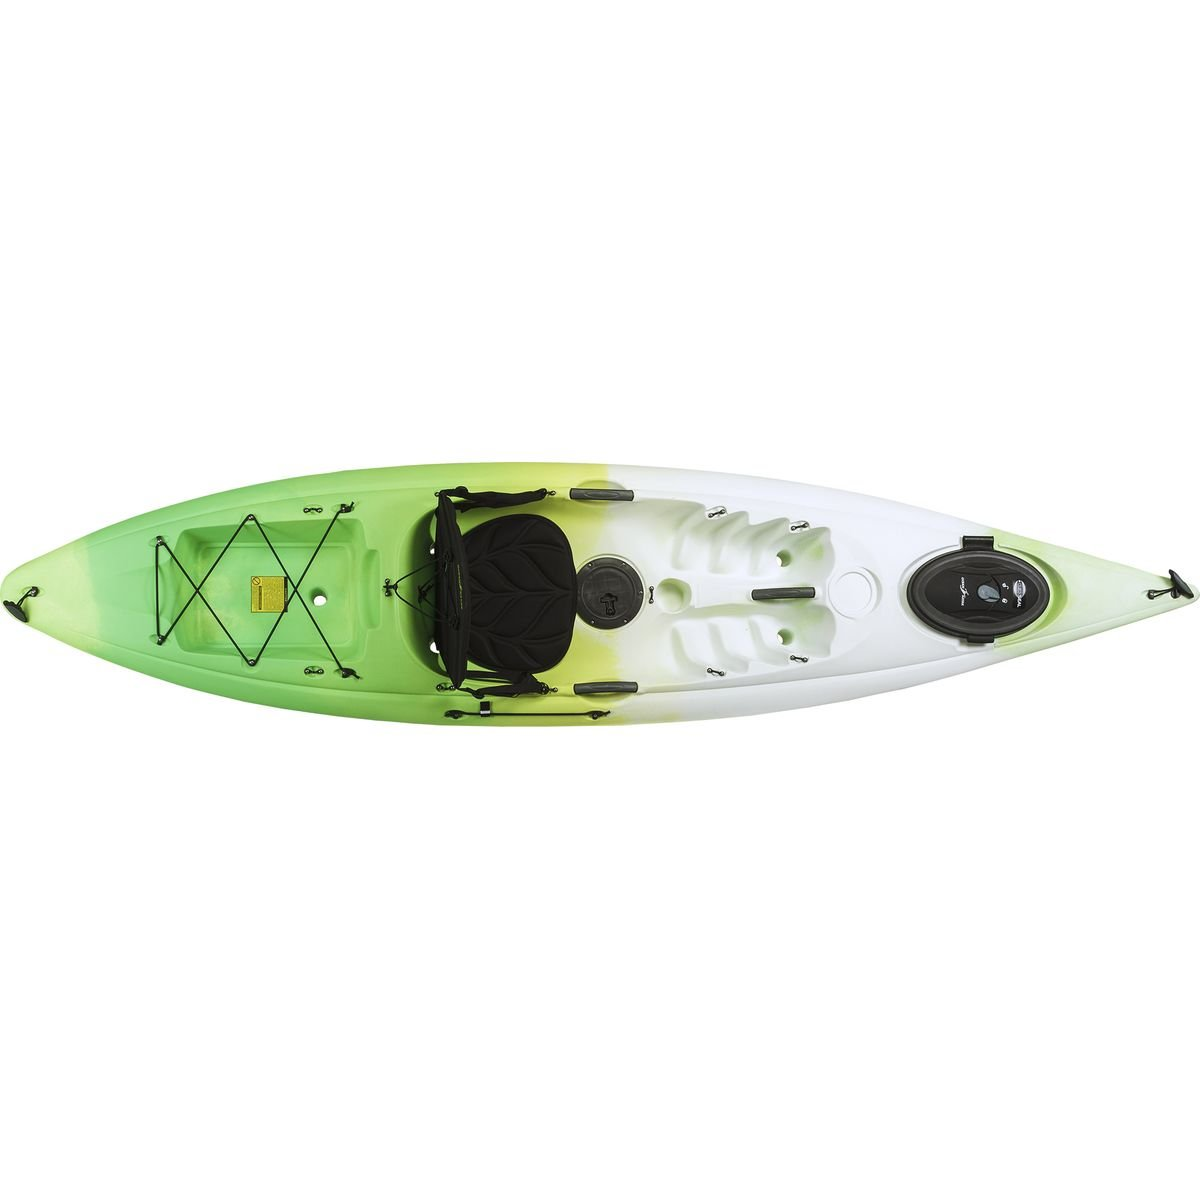 Ocean Kayak Venus 11 One-Person Women's Sit-On-Top Kayak, Envy, 10 Feet 8 Inches